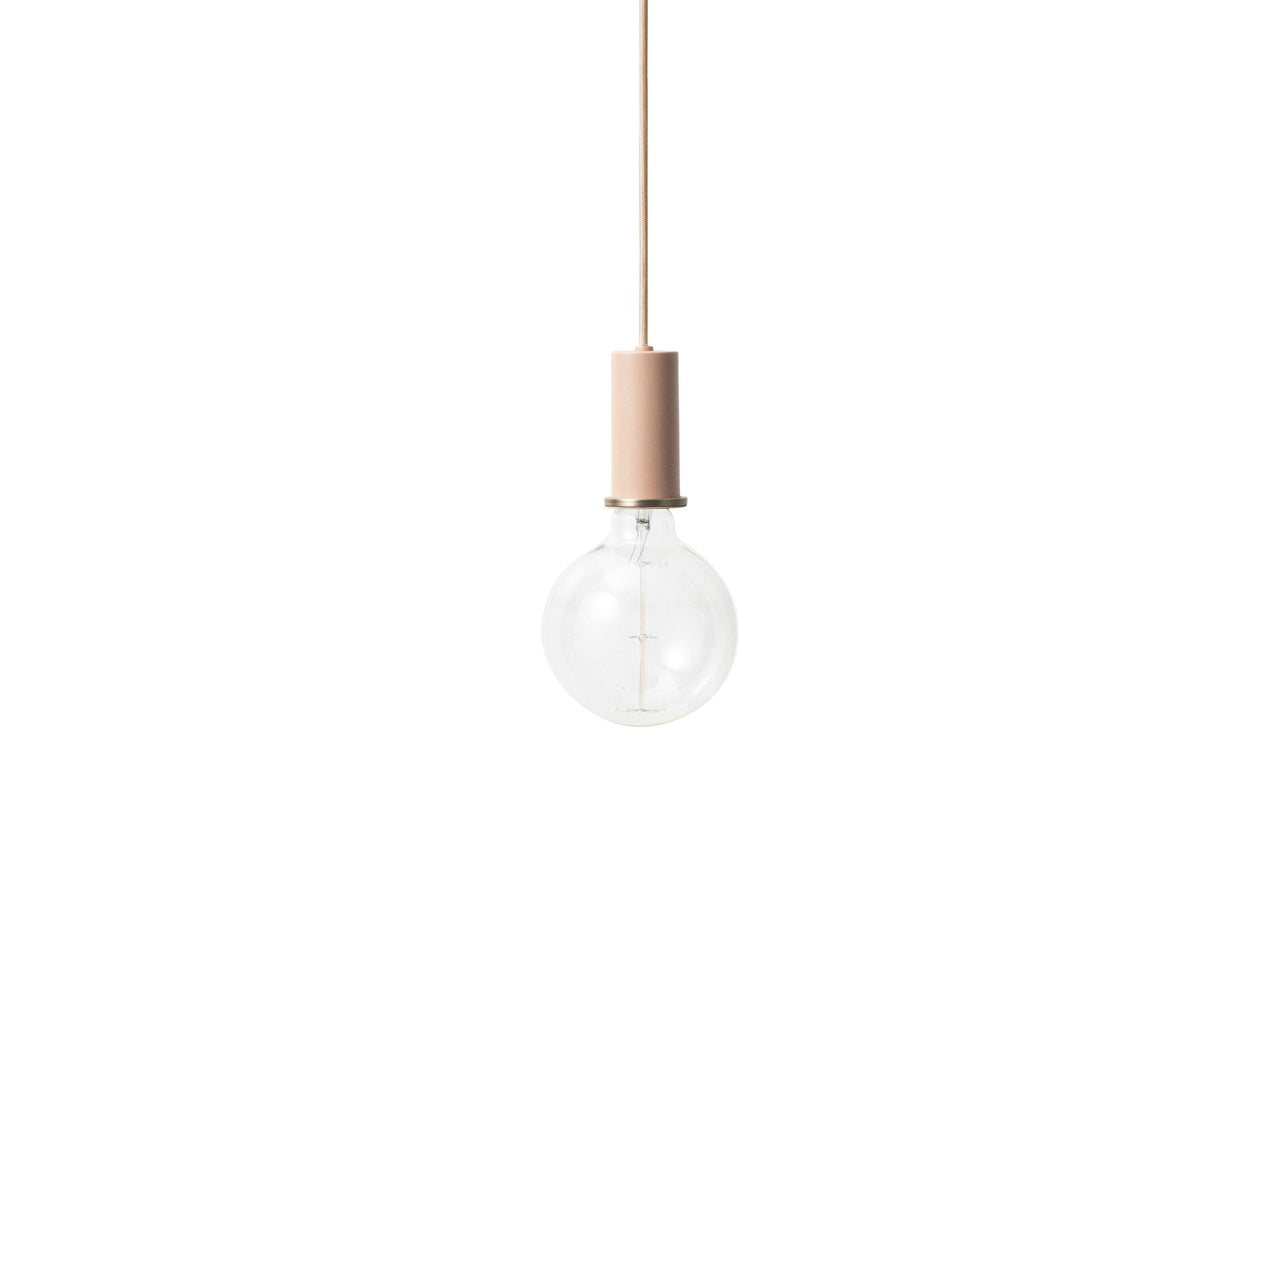 Collect Lighting: Pendant + Low + Rose